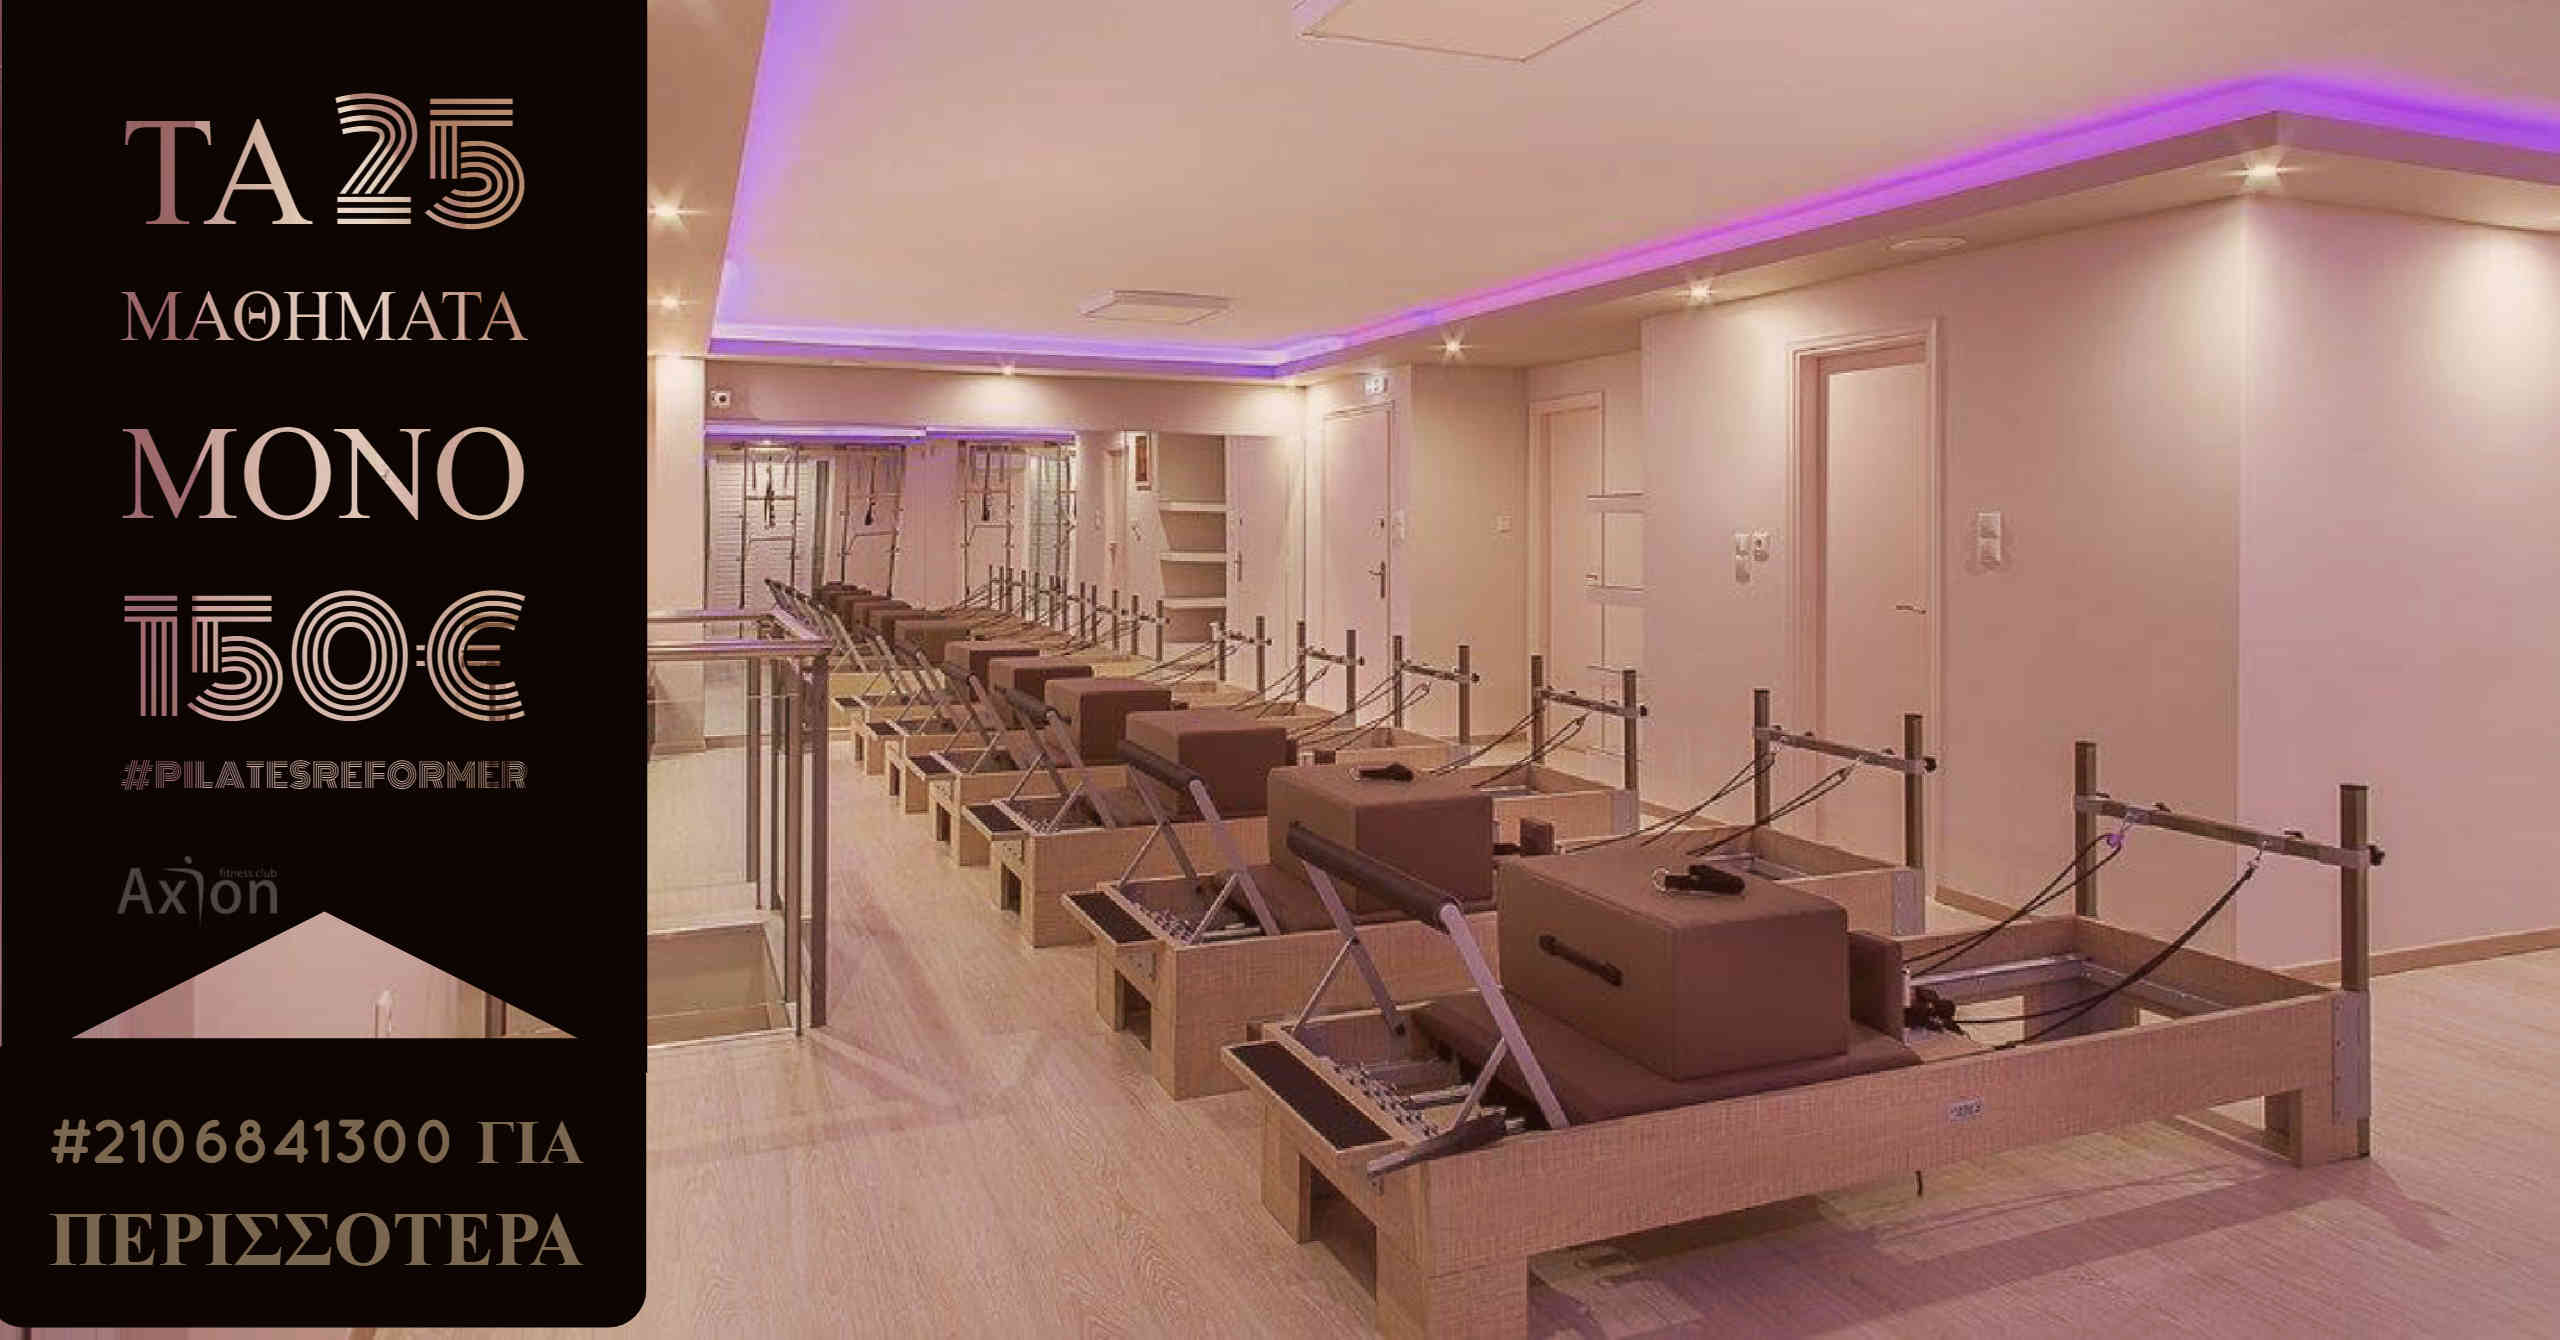 Pilates Reformer Classroom in Axion Fitness Club in Halandri